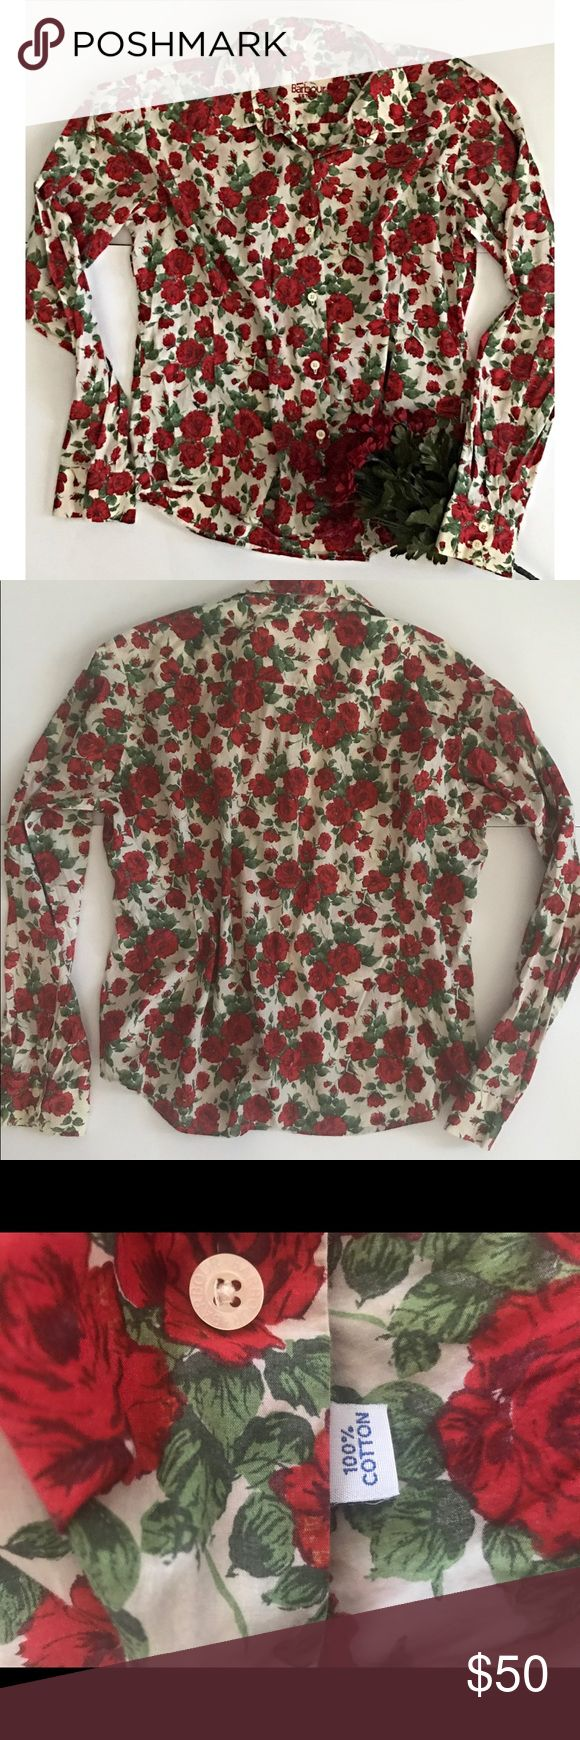 Barbour Liberty Rose woman's button up🌹 For sale a gently worn Barbour woman's liberty rose button up long sleeve top. 100% cotton. Measurements length 27 inches, sleeves 24 1/2 inches. In awesome condition . Feel free to ask me anything, thank you💋 Barbour Tops Button Down Shirts